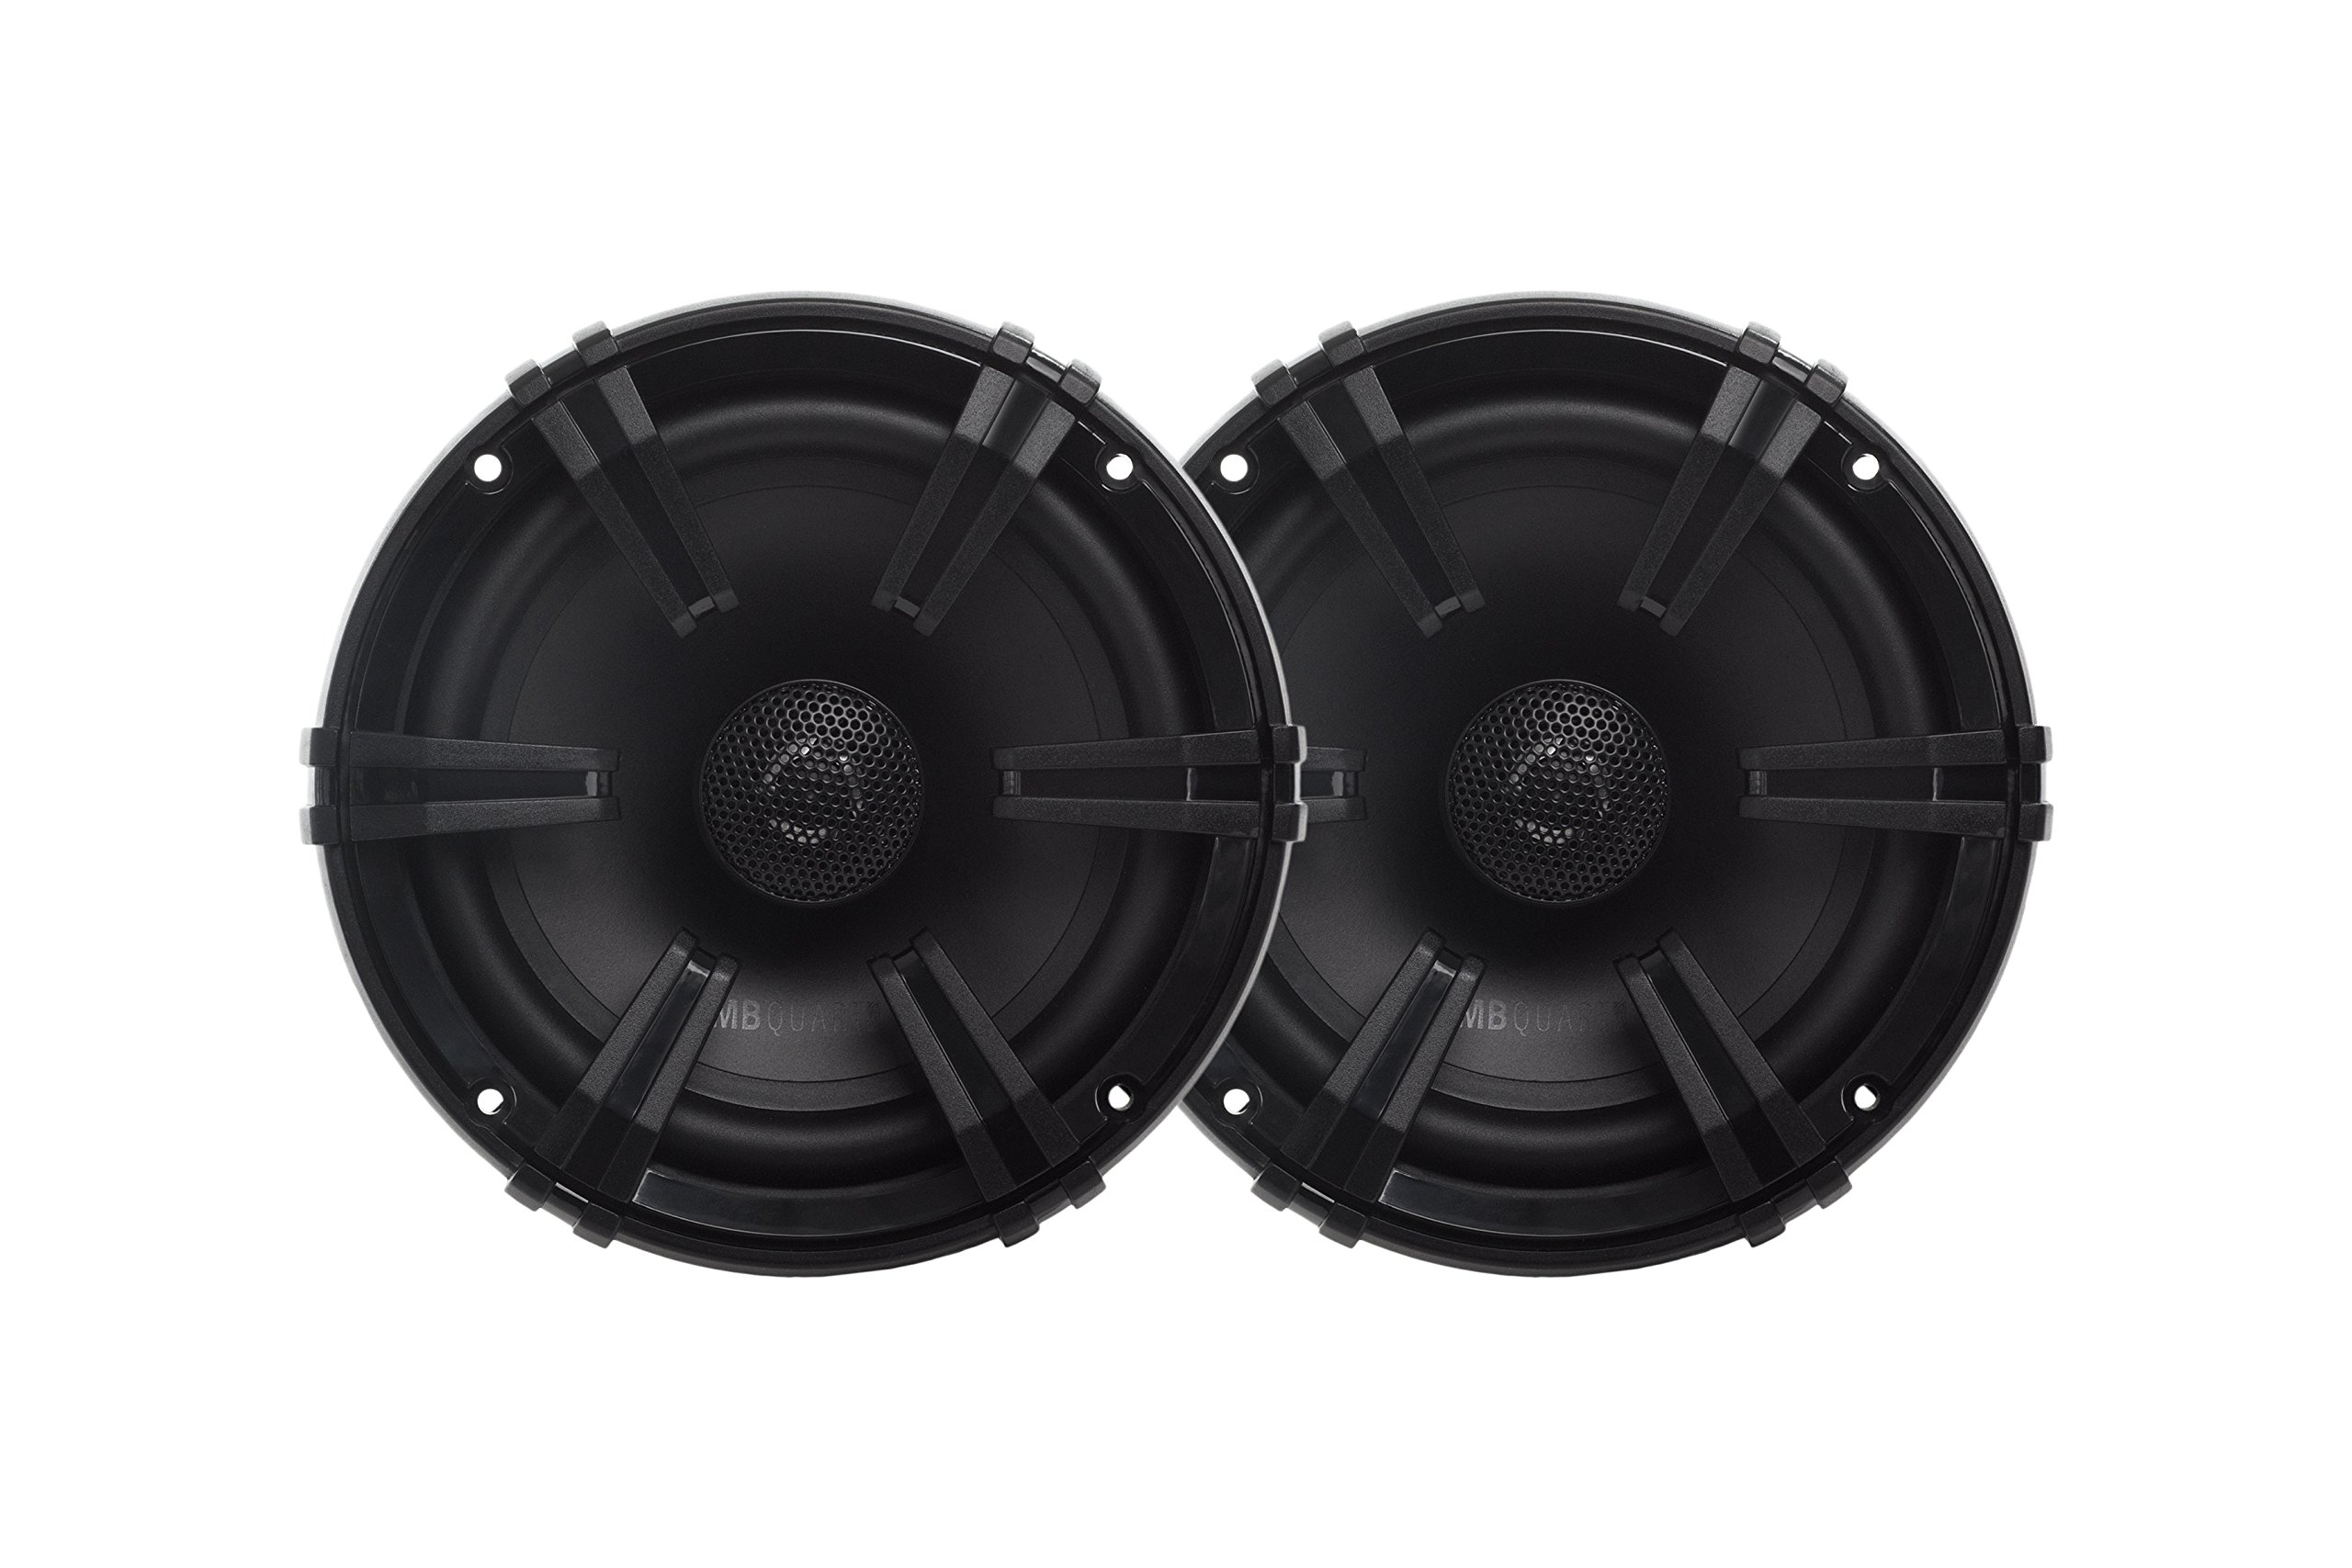 MB Quart DK1-116 Discus 2-Way Car Coaxial Speaker System with 0.75-Inch Aluminum Dome Tweeter on Silk Surround, 6.5-Inch, Set of 2